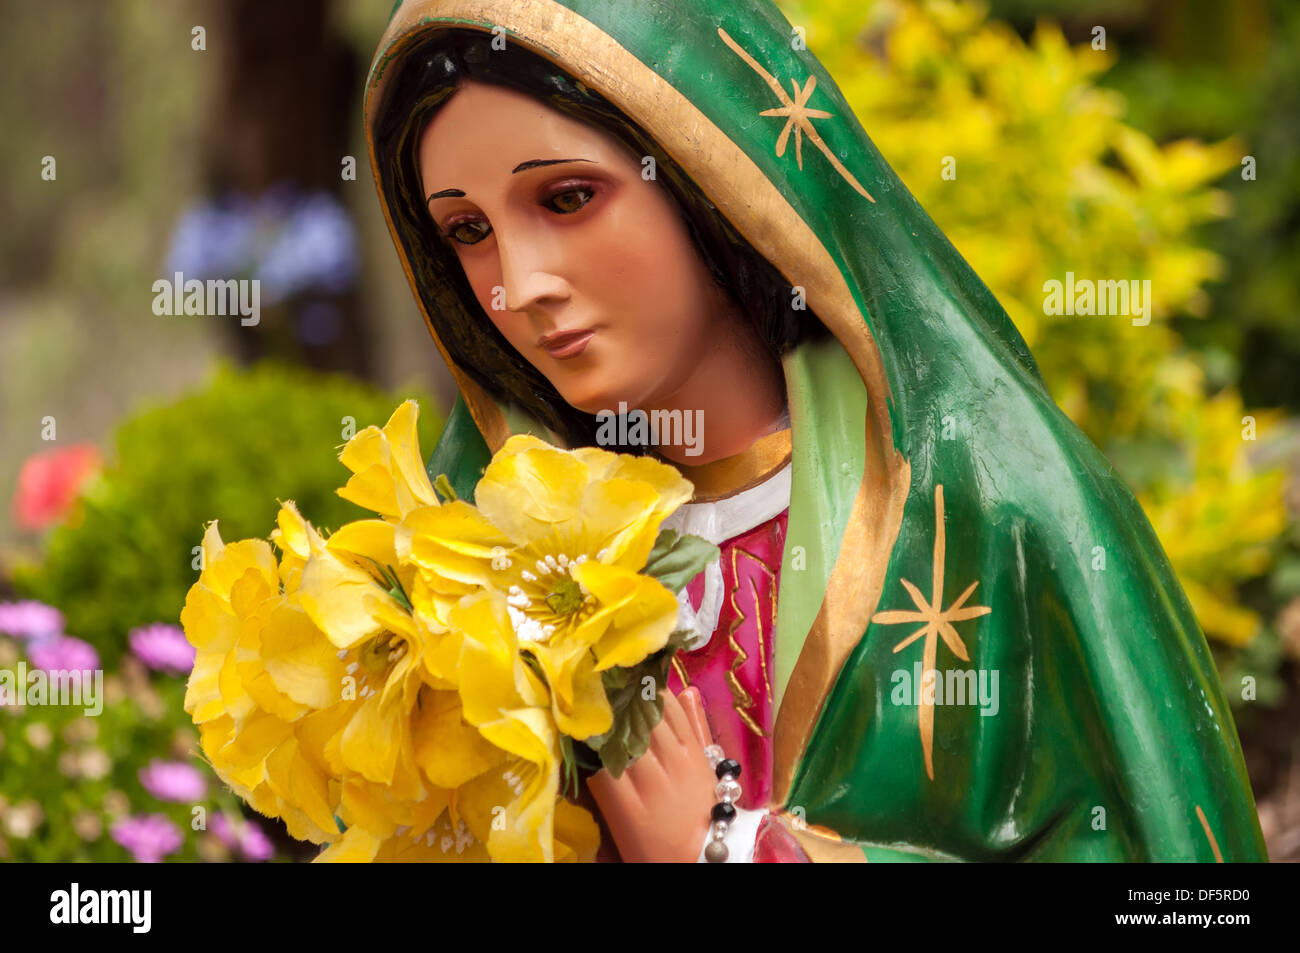 Colorful statue of the Virgin Mary in Mexico City - Stock Image